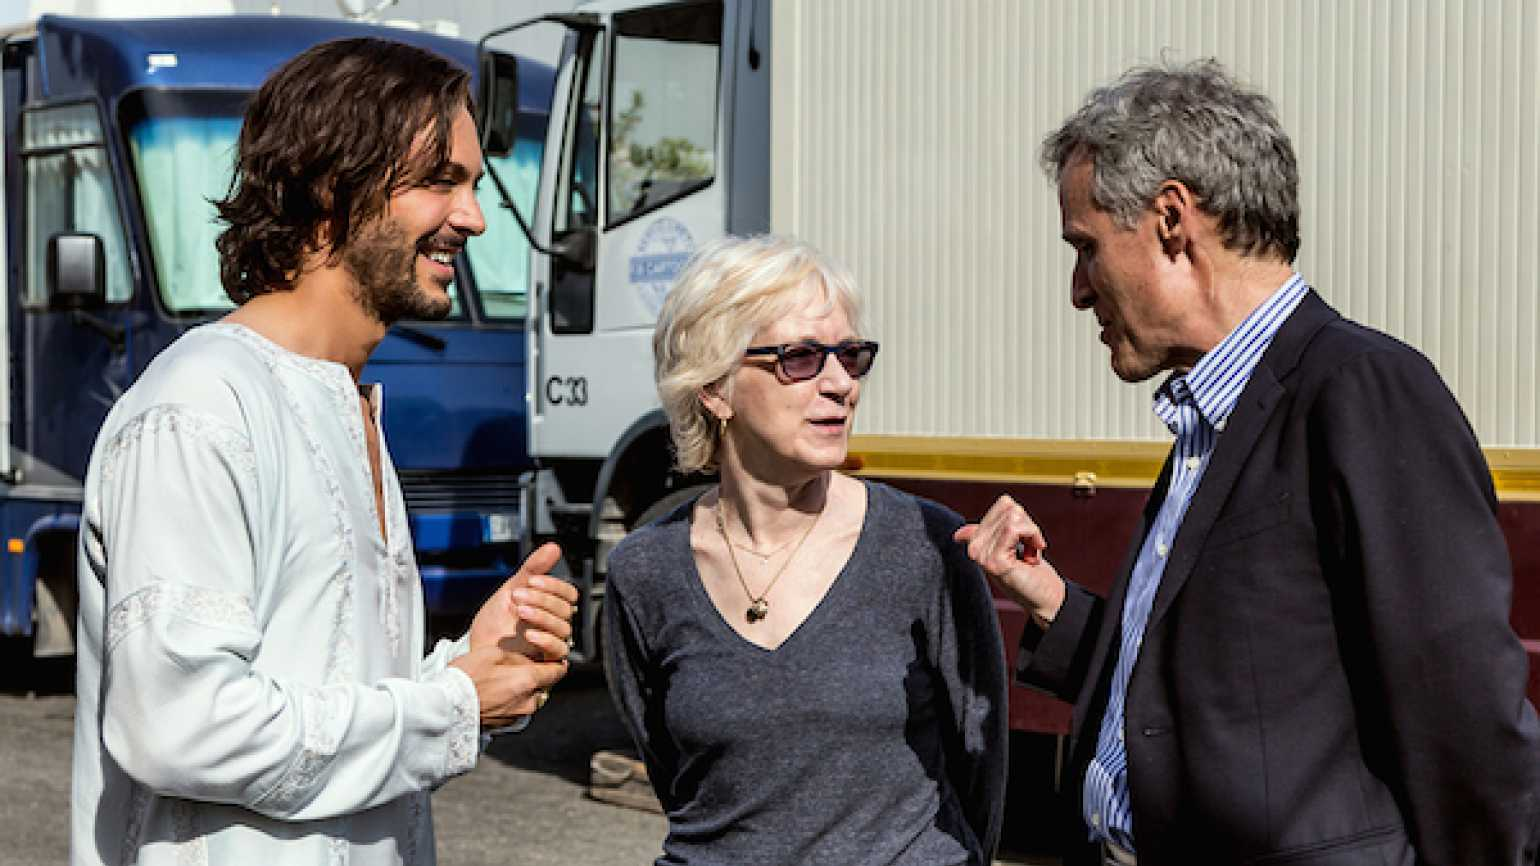 Jack Huston, Carol Wallace and Rick Hamlin on the set of Ben-Hur. Photo: Andrea DiLorenzo, © 2016 Paramount Pictures and Metro-Goldwyn-Mayer Pictures Inc. All Rights Reserved.